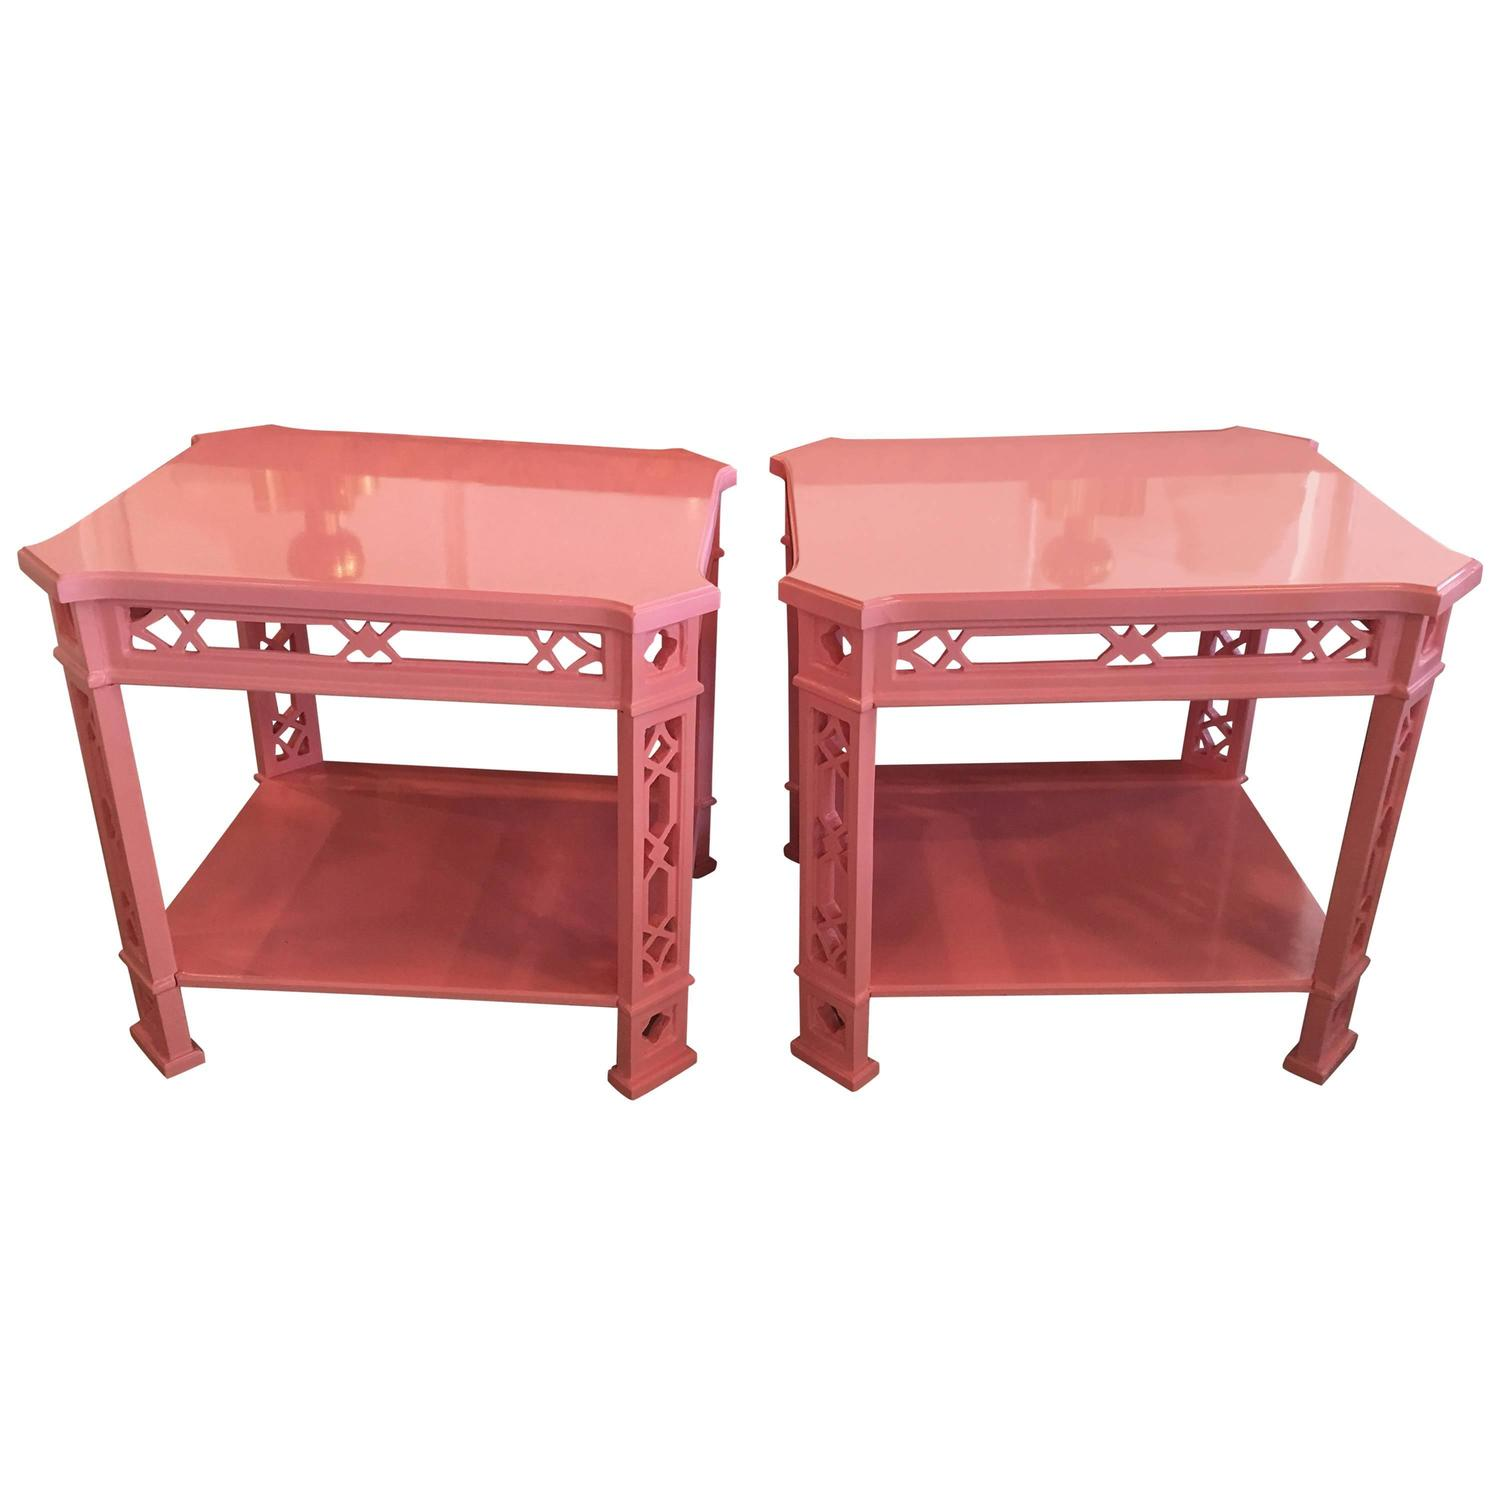 Pair of Coral Pink End Side Tables Lacquered Fretwork Fret Chinese